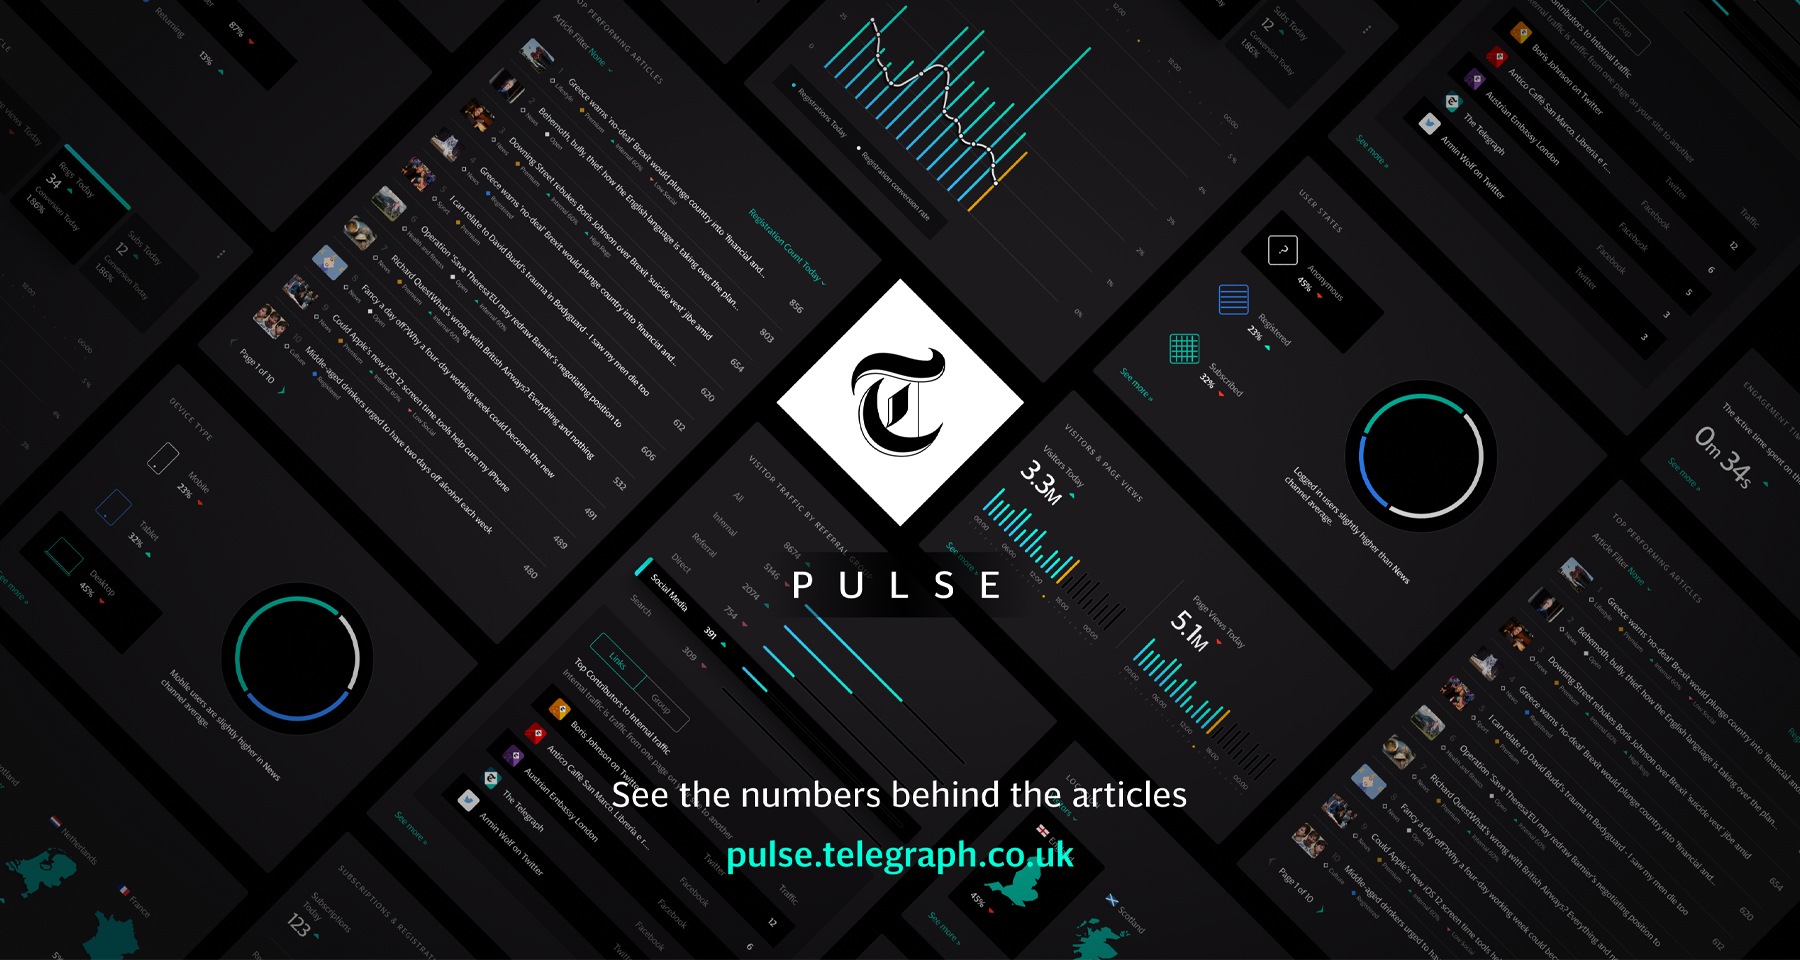 Telegraph Pulse empowers journalists with real-time data